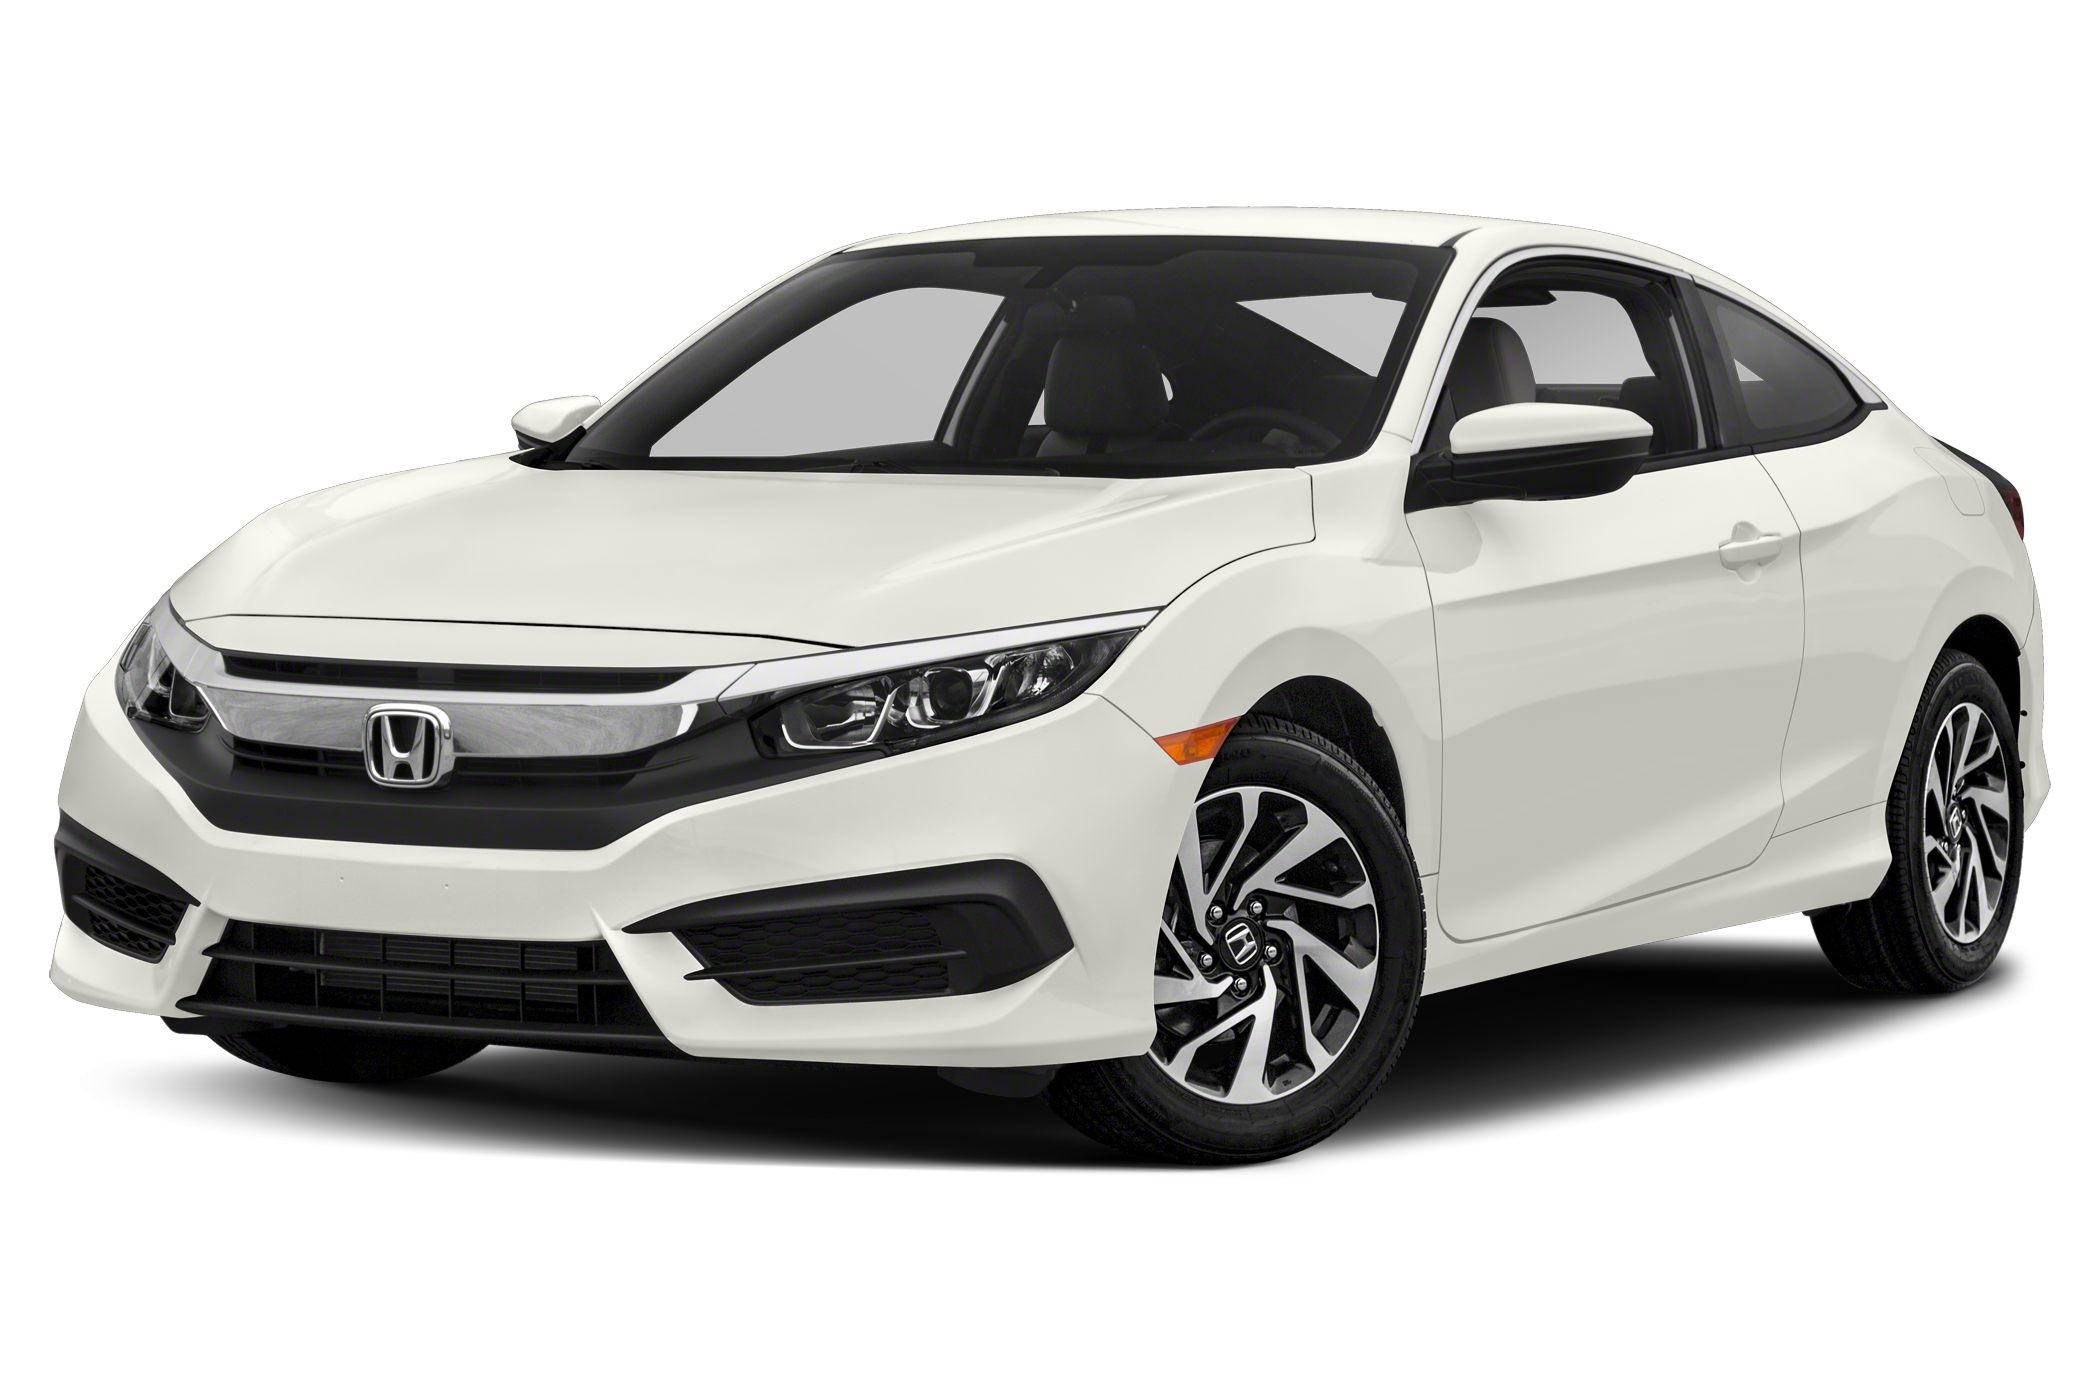 Used Cars for 3000 Inspirational Used Honda Accord for Sale Under 3000 New and Used Cars for Sale In